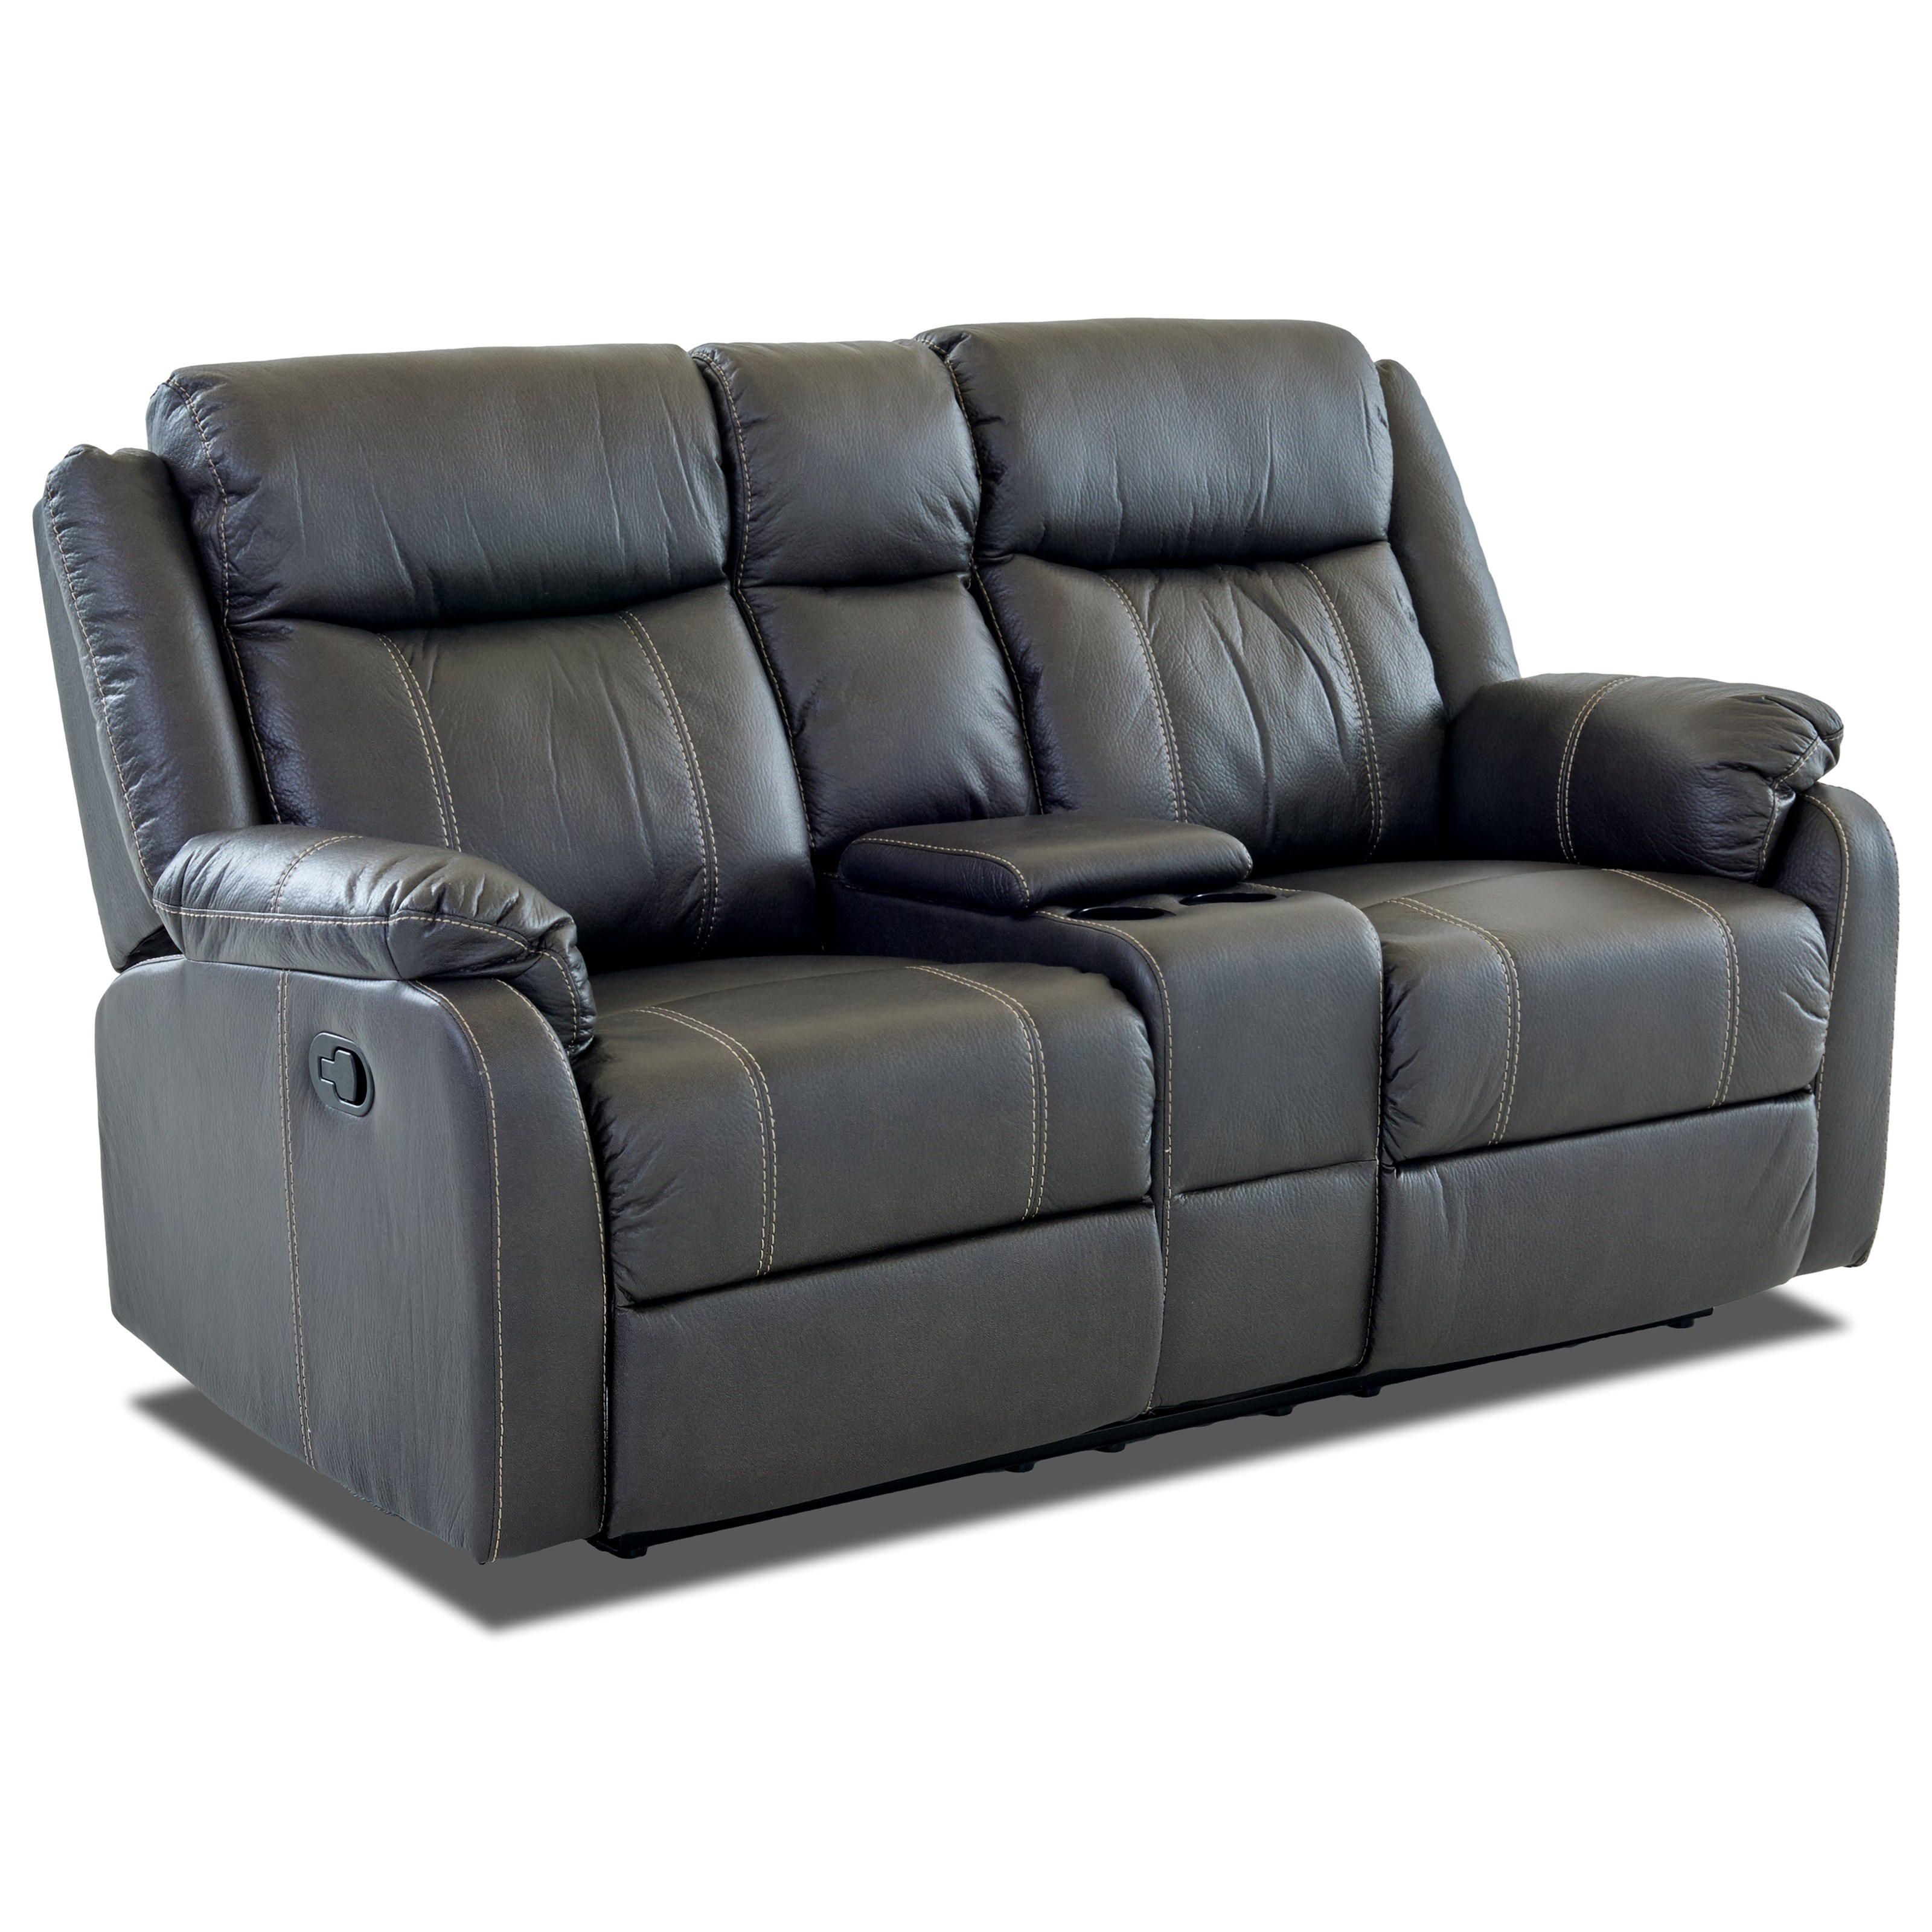 Valor Casual Console Reclining Loveseat Rotmans